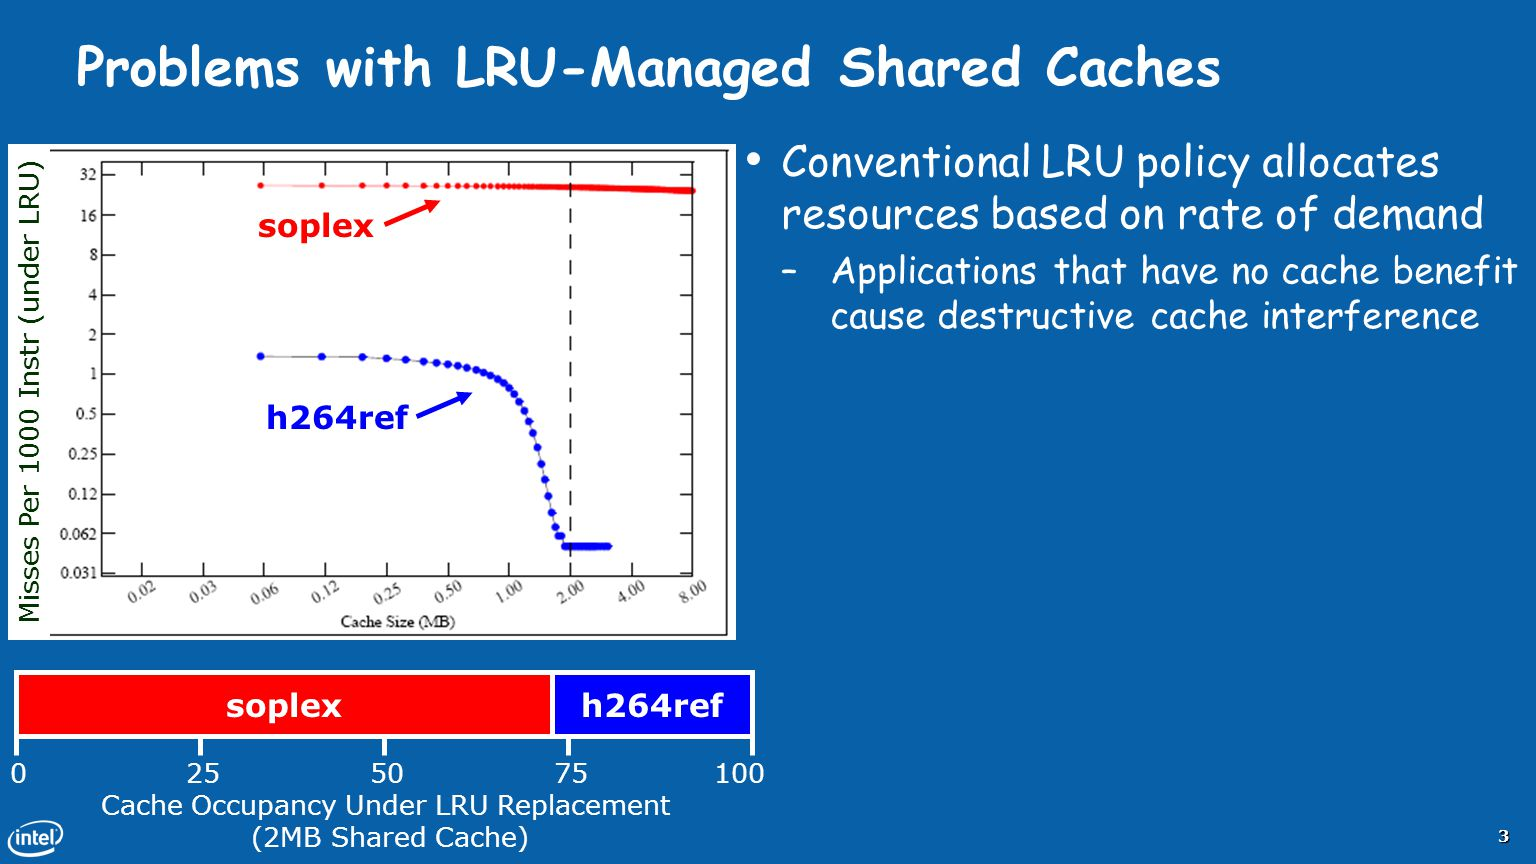 Problems with LRU-Managed Shared Caches